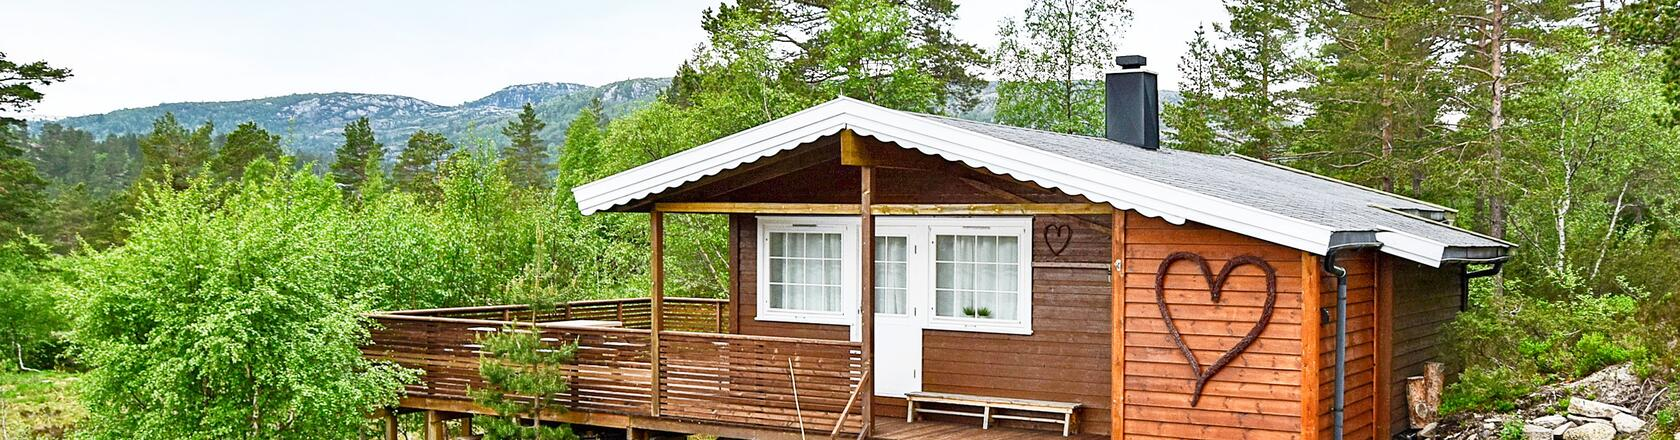 Aust-Agder in Norway — Rent a holiday home with DanCenter